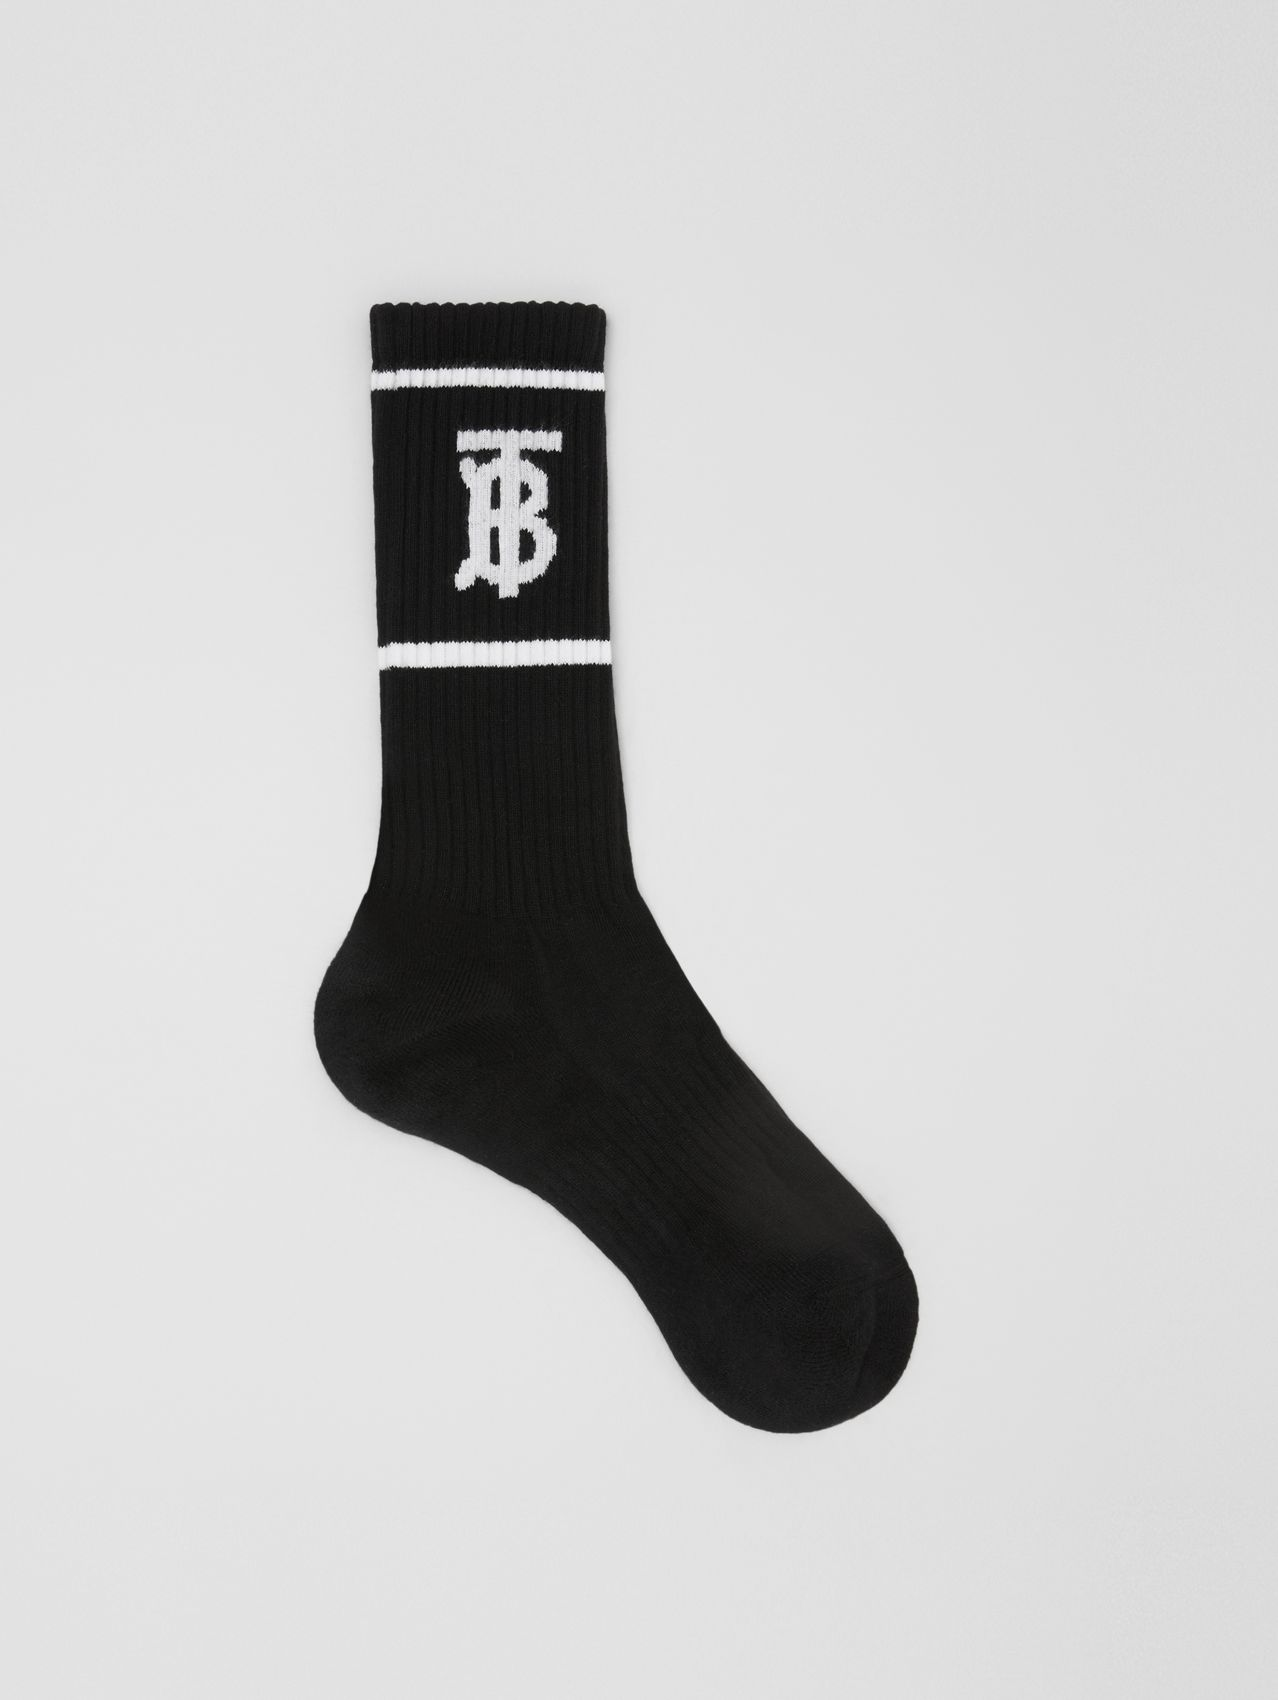 Monogram Motif Intarsia Socks (Black)